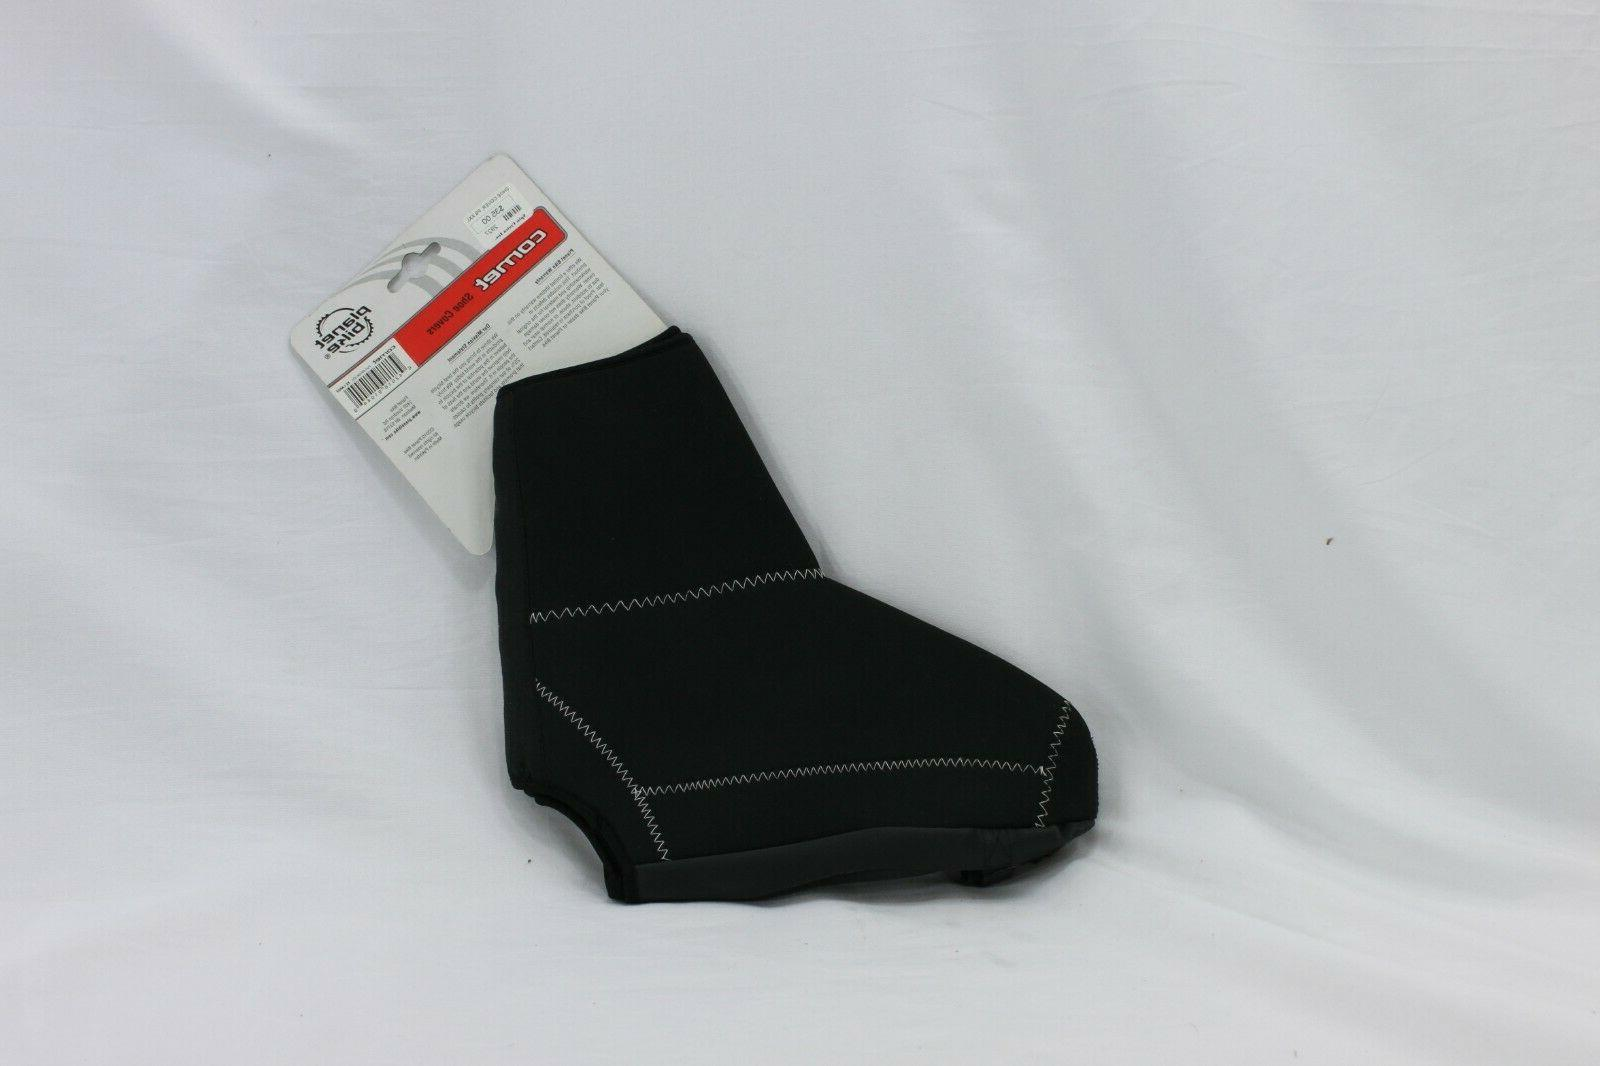 Planet Shoe Covers